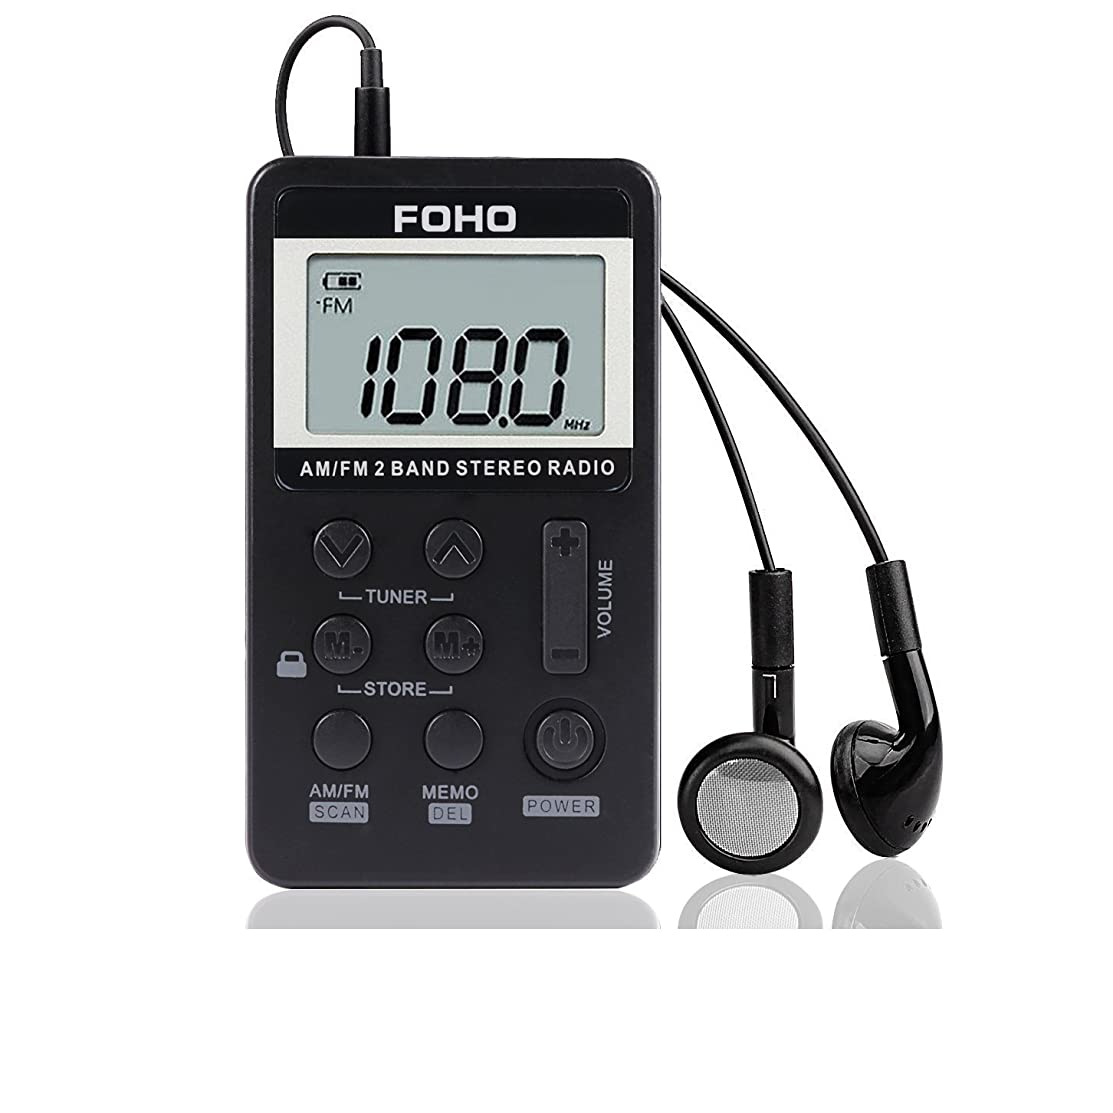 AM FM Pocket Radio, Foho Pocket Portable Digital Tuning AM/FM Stereo Radio with Rechargeable Battery and Earphone for Walk/Jogging/Gym/Camping